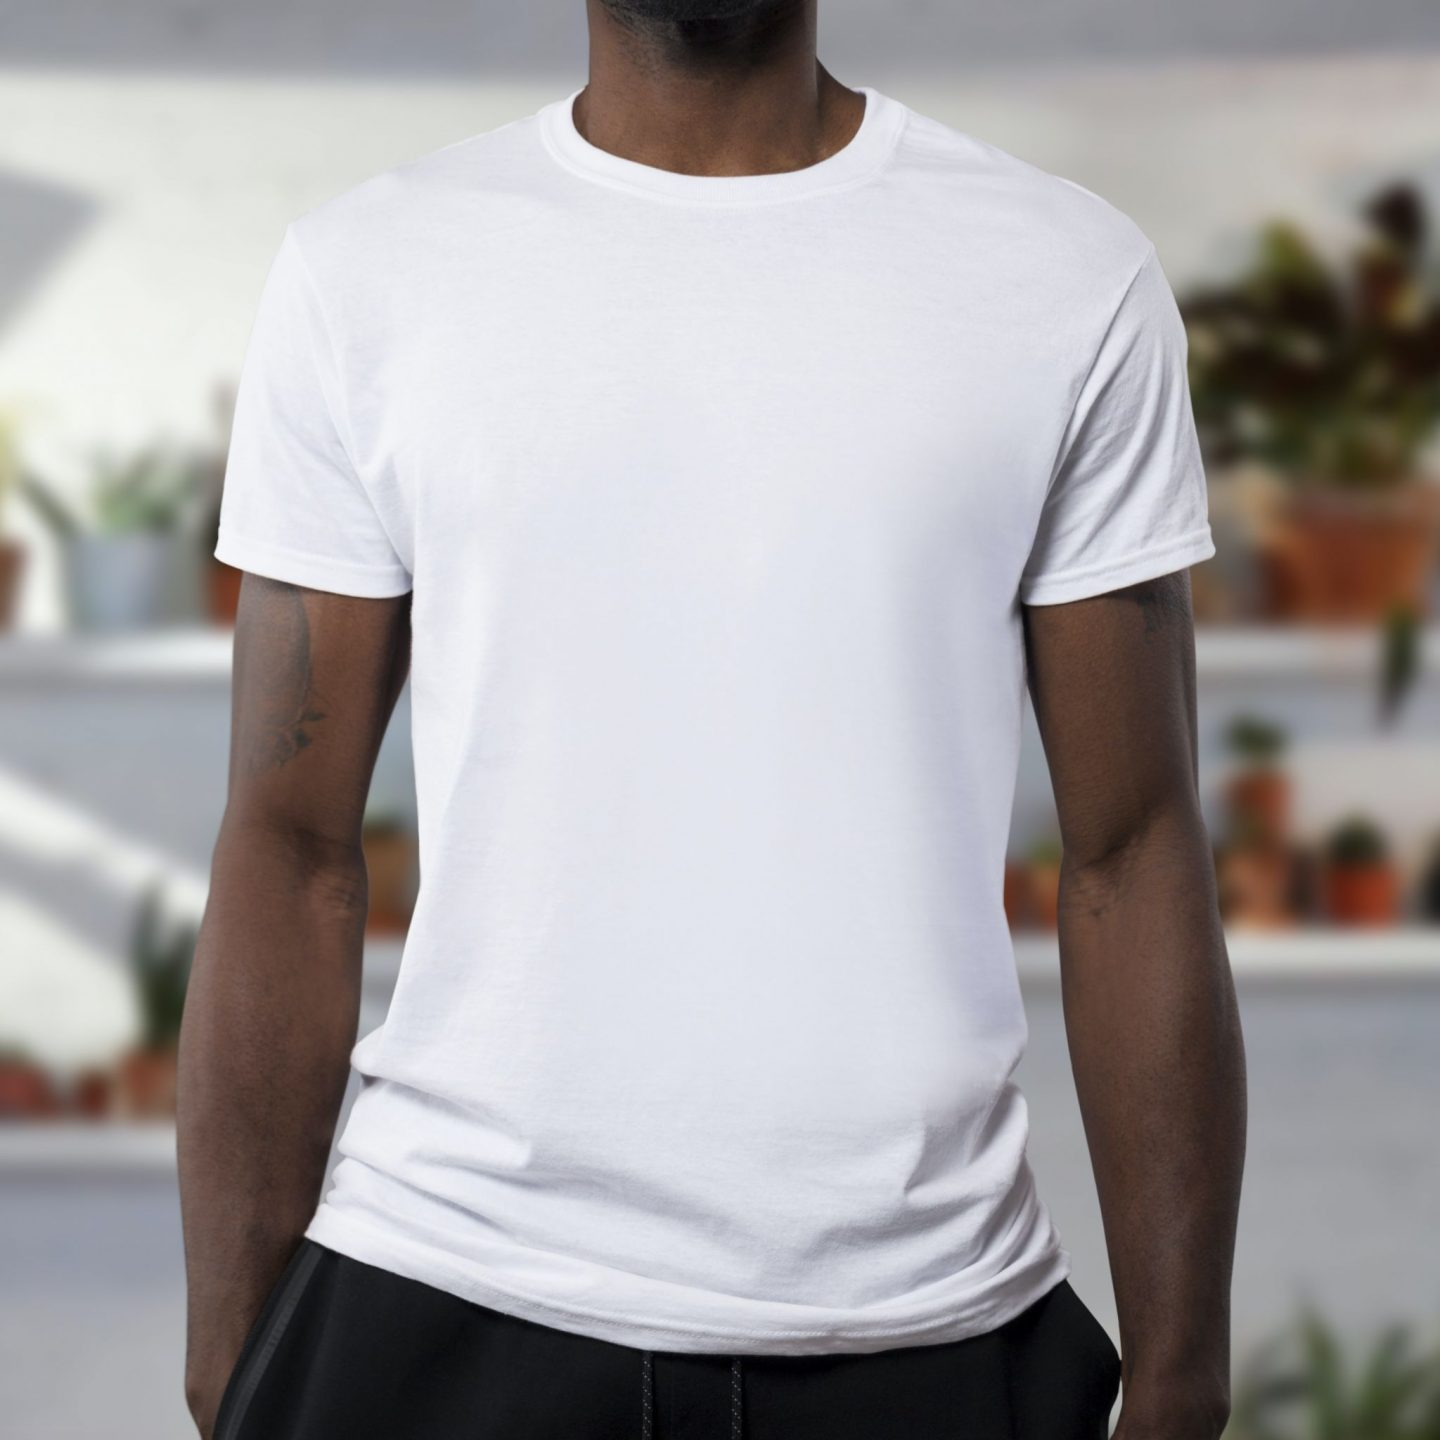 DIFFERENT STYLES AND TYPES OF T-SHIRTS